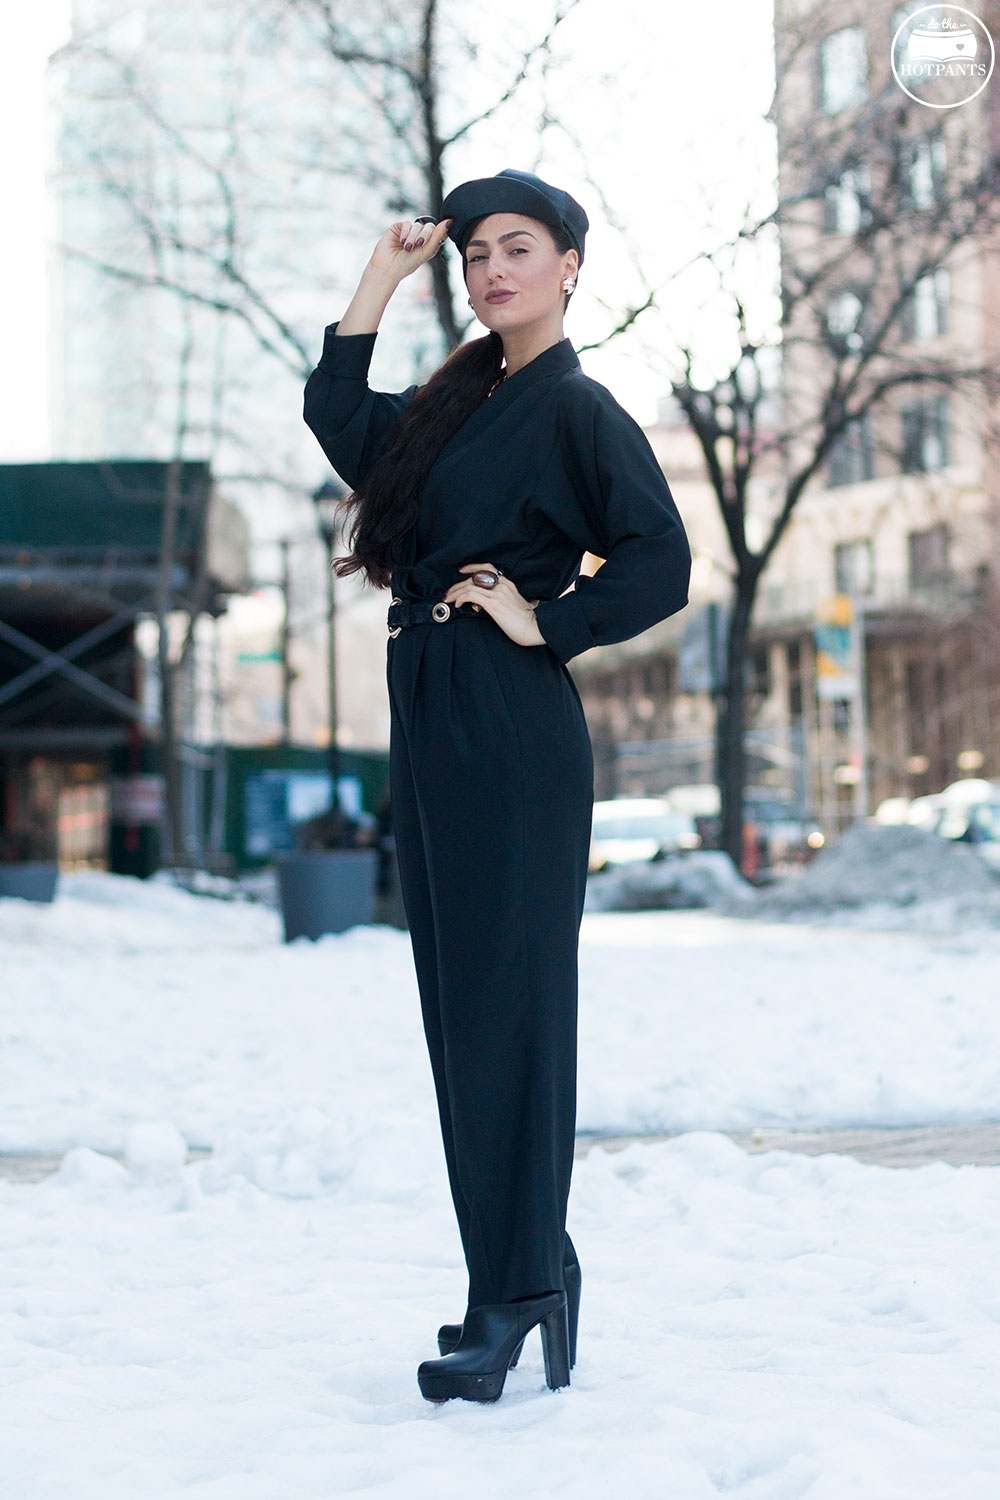 Do The Hotpants Dana Suchow Black Goth Jumpsuit Side Ponytail Leather Hat Winter Fashion Woman in Snow IMG_6314